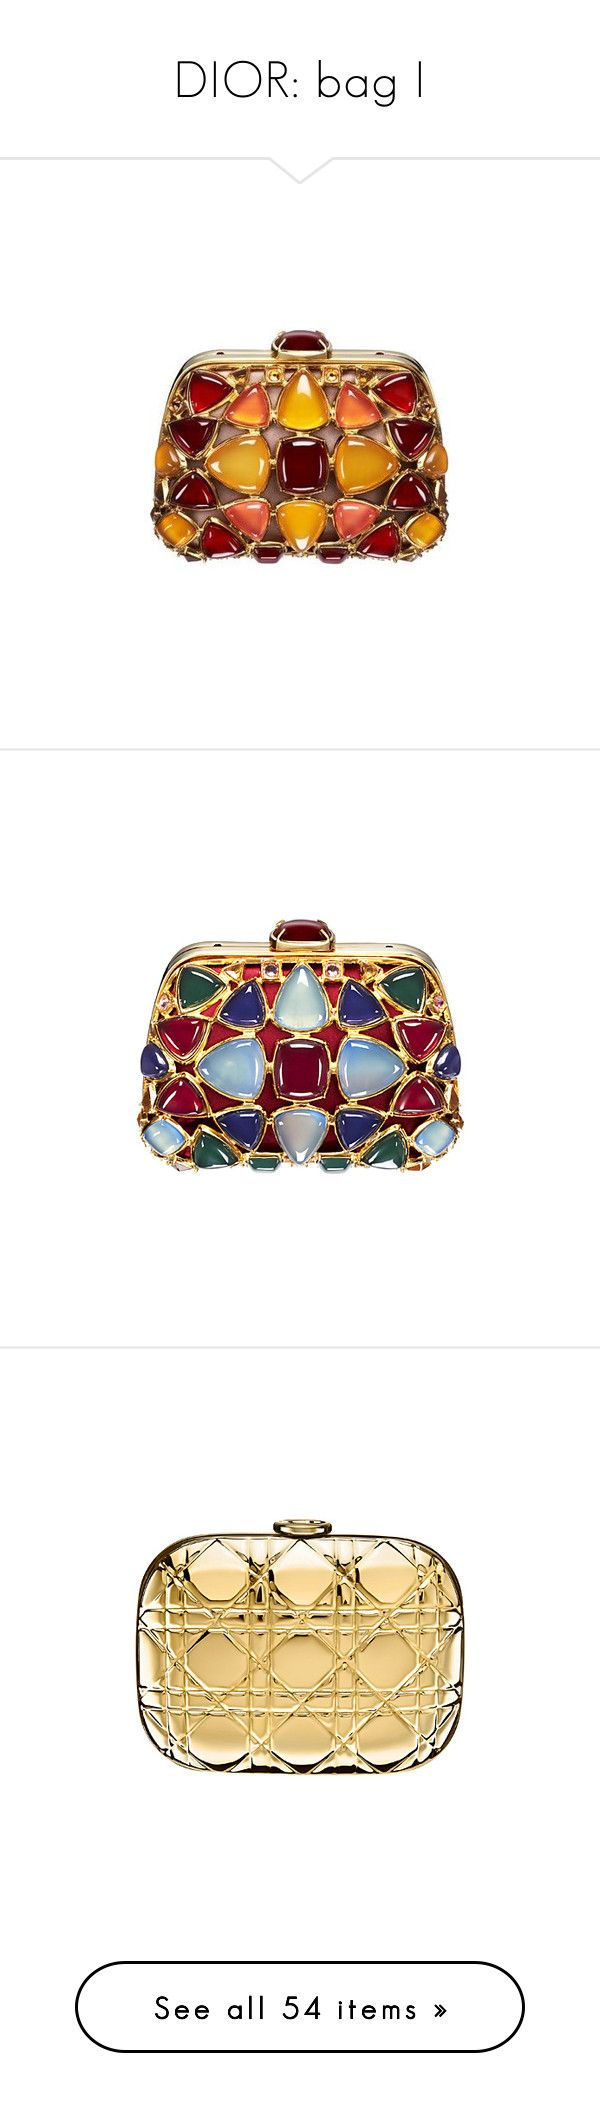 """""""DIOR: bag I"""" by tynabrookler ❤ liked on Polyvore featuring bags, clutches, borse, accessories, handbags, purses, сумки, hand bags, man bag and christian dior handbags"""